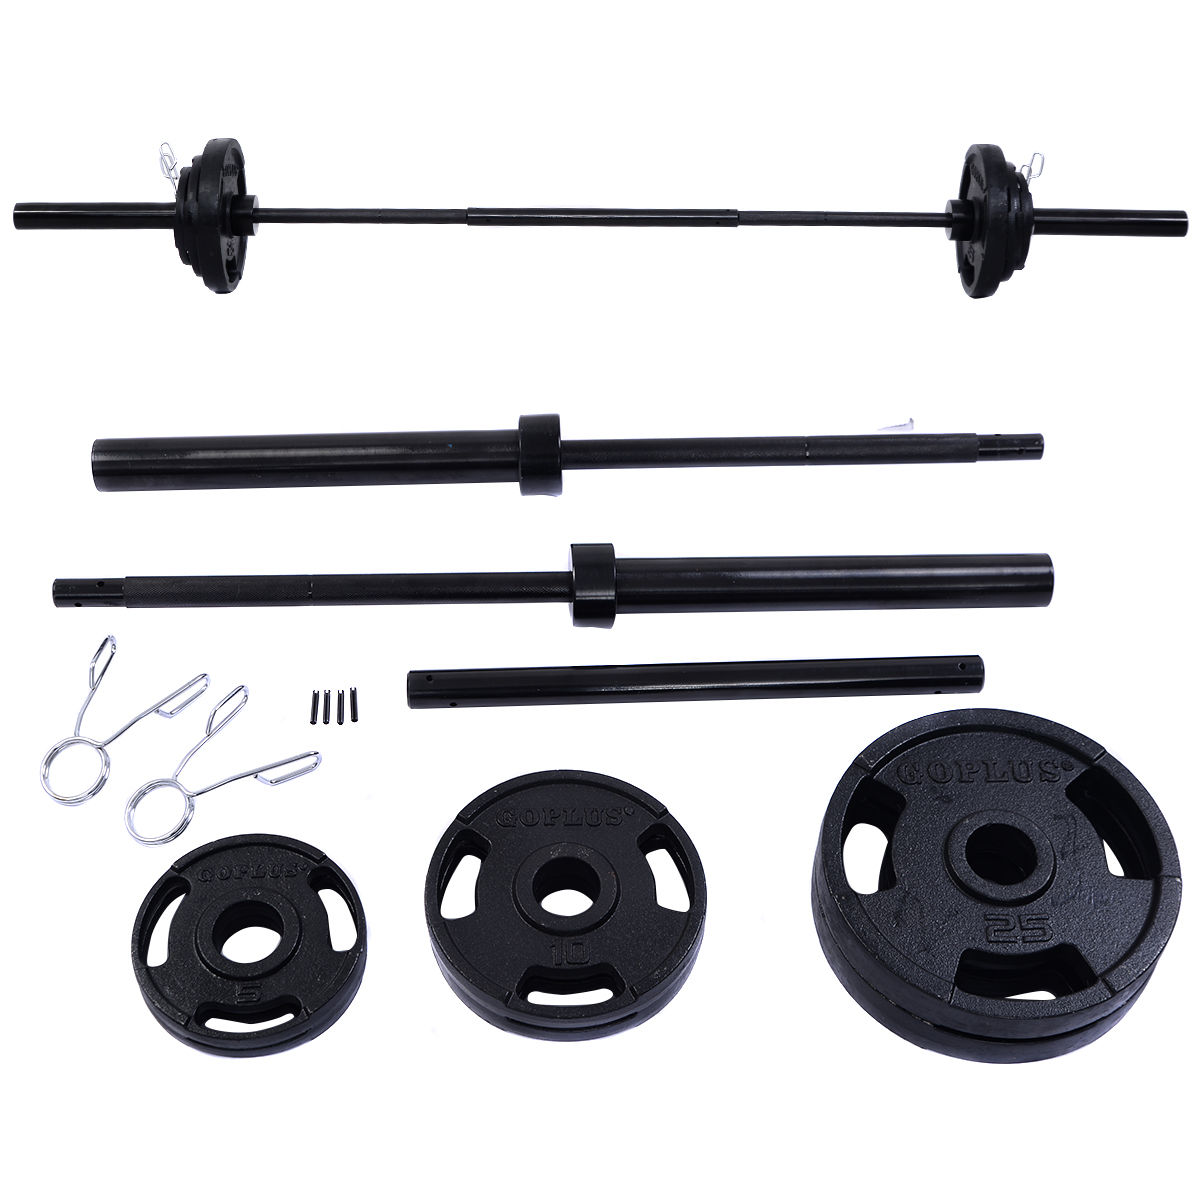 Costway 110 LBS 84'' Olympic Barbell Set Plates Weight Lifting Strength Training Workout